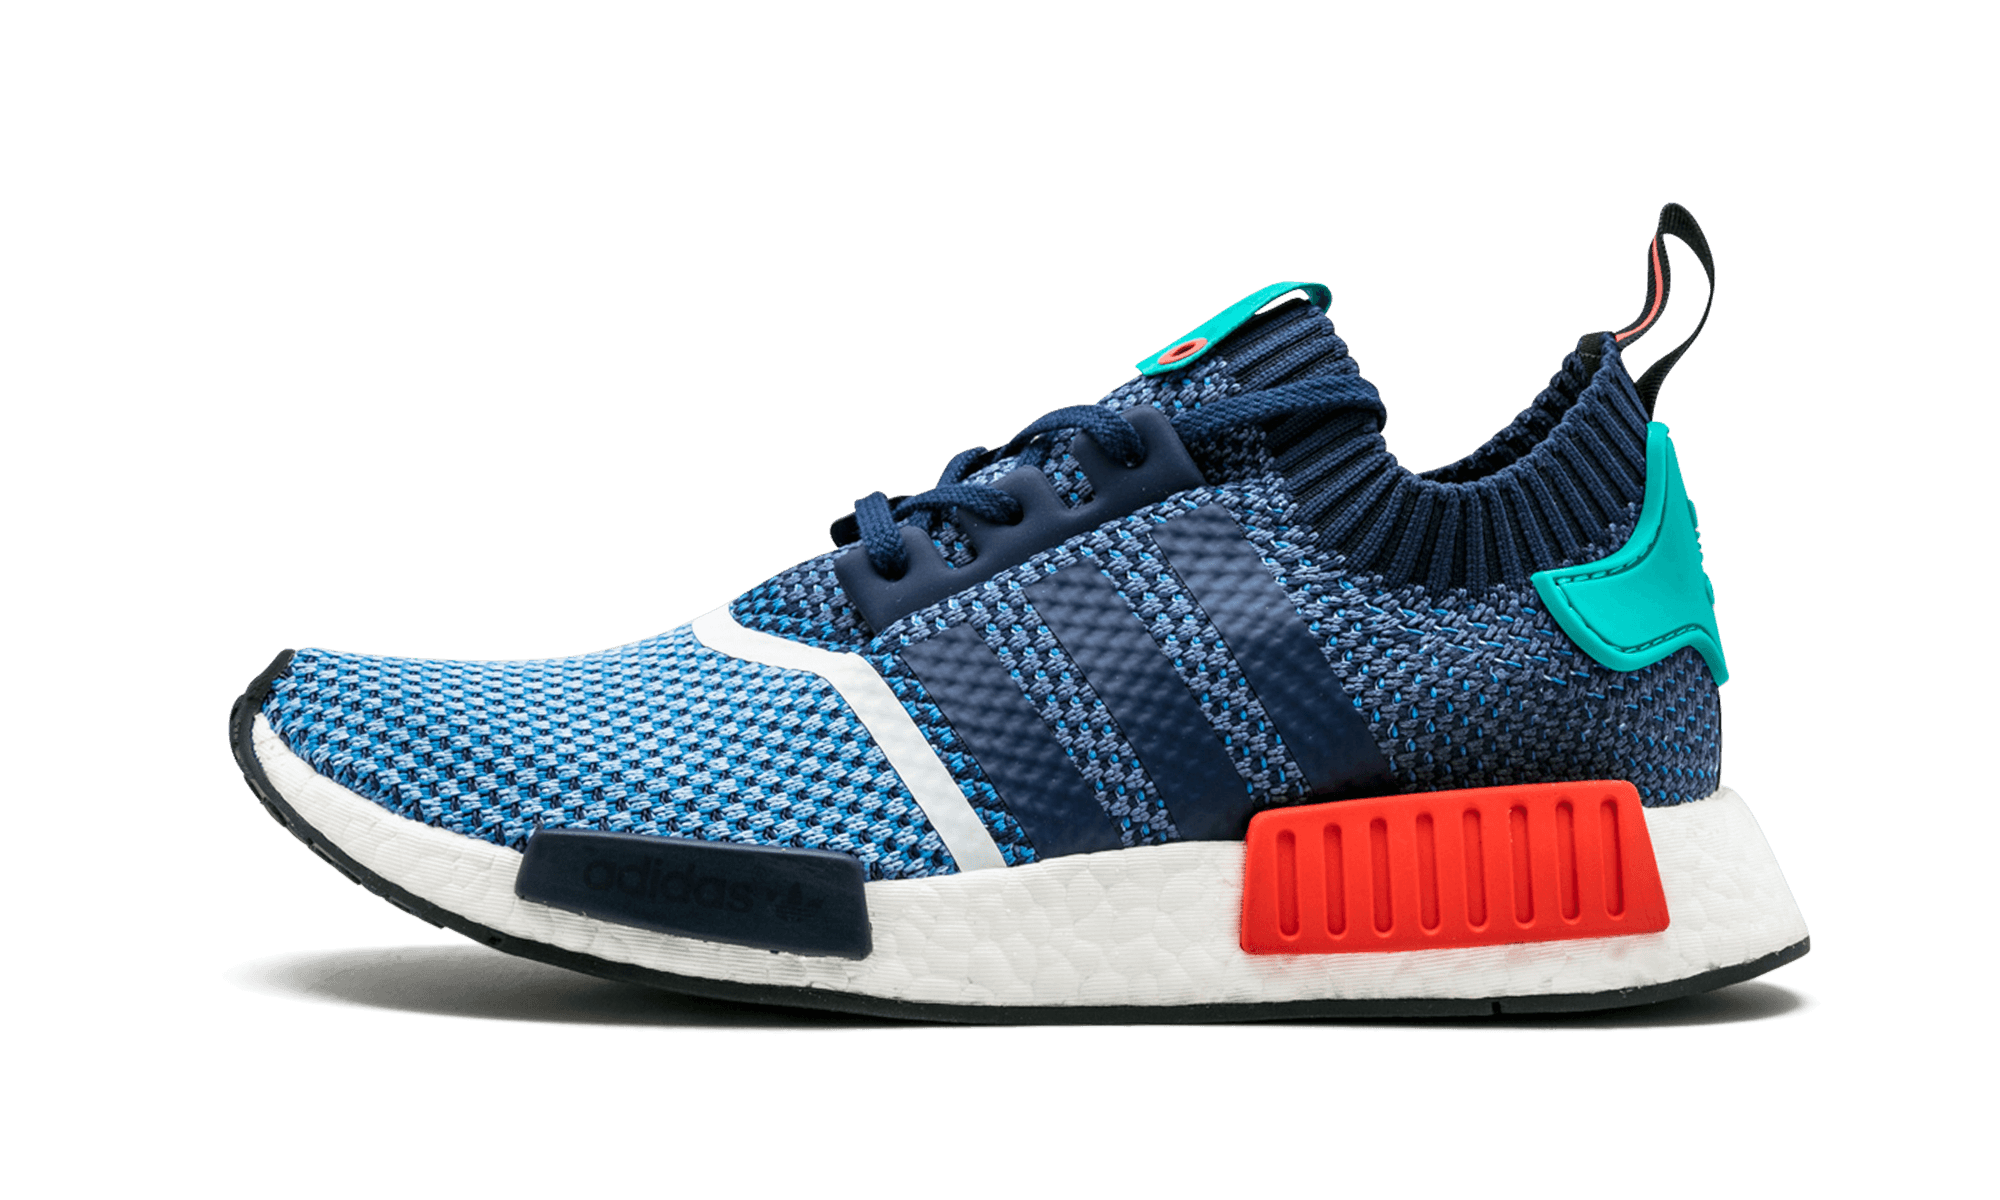 Packer Shoes x Adidas Consortium NMD Runner BB5051 : Real